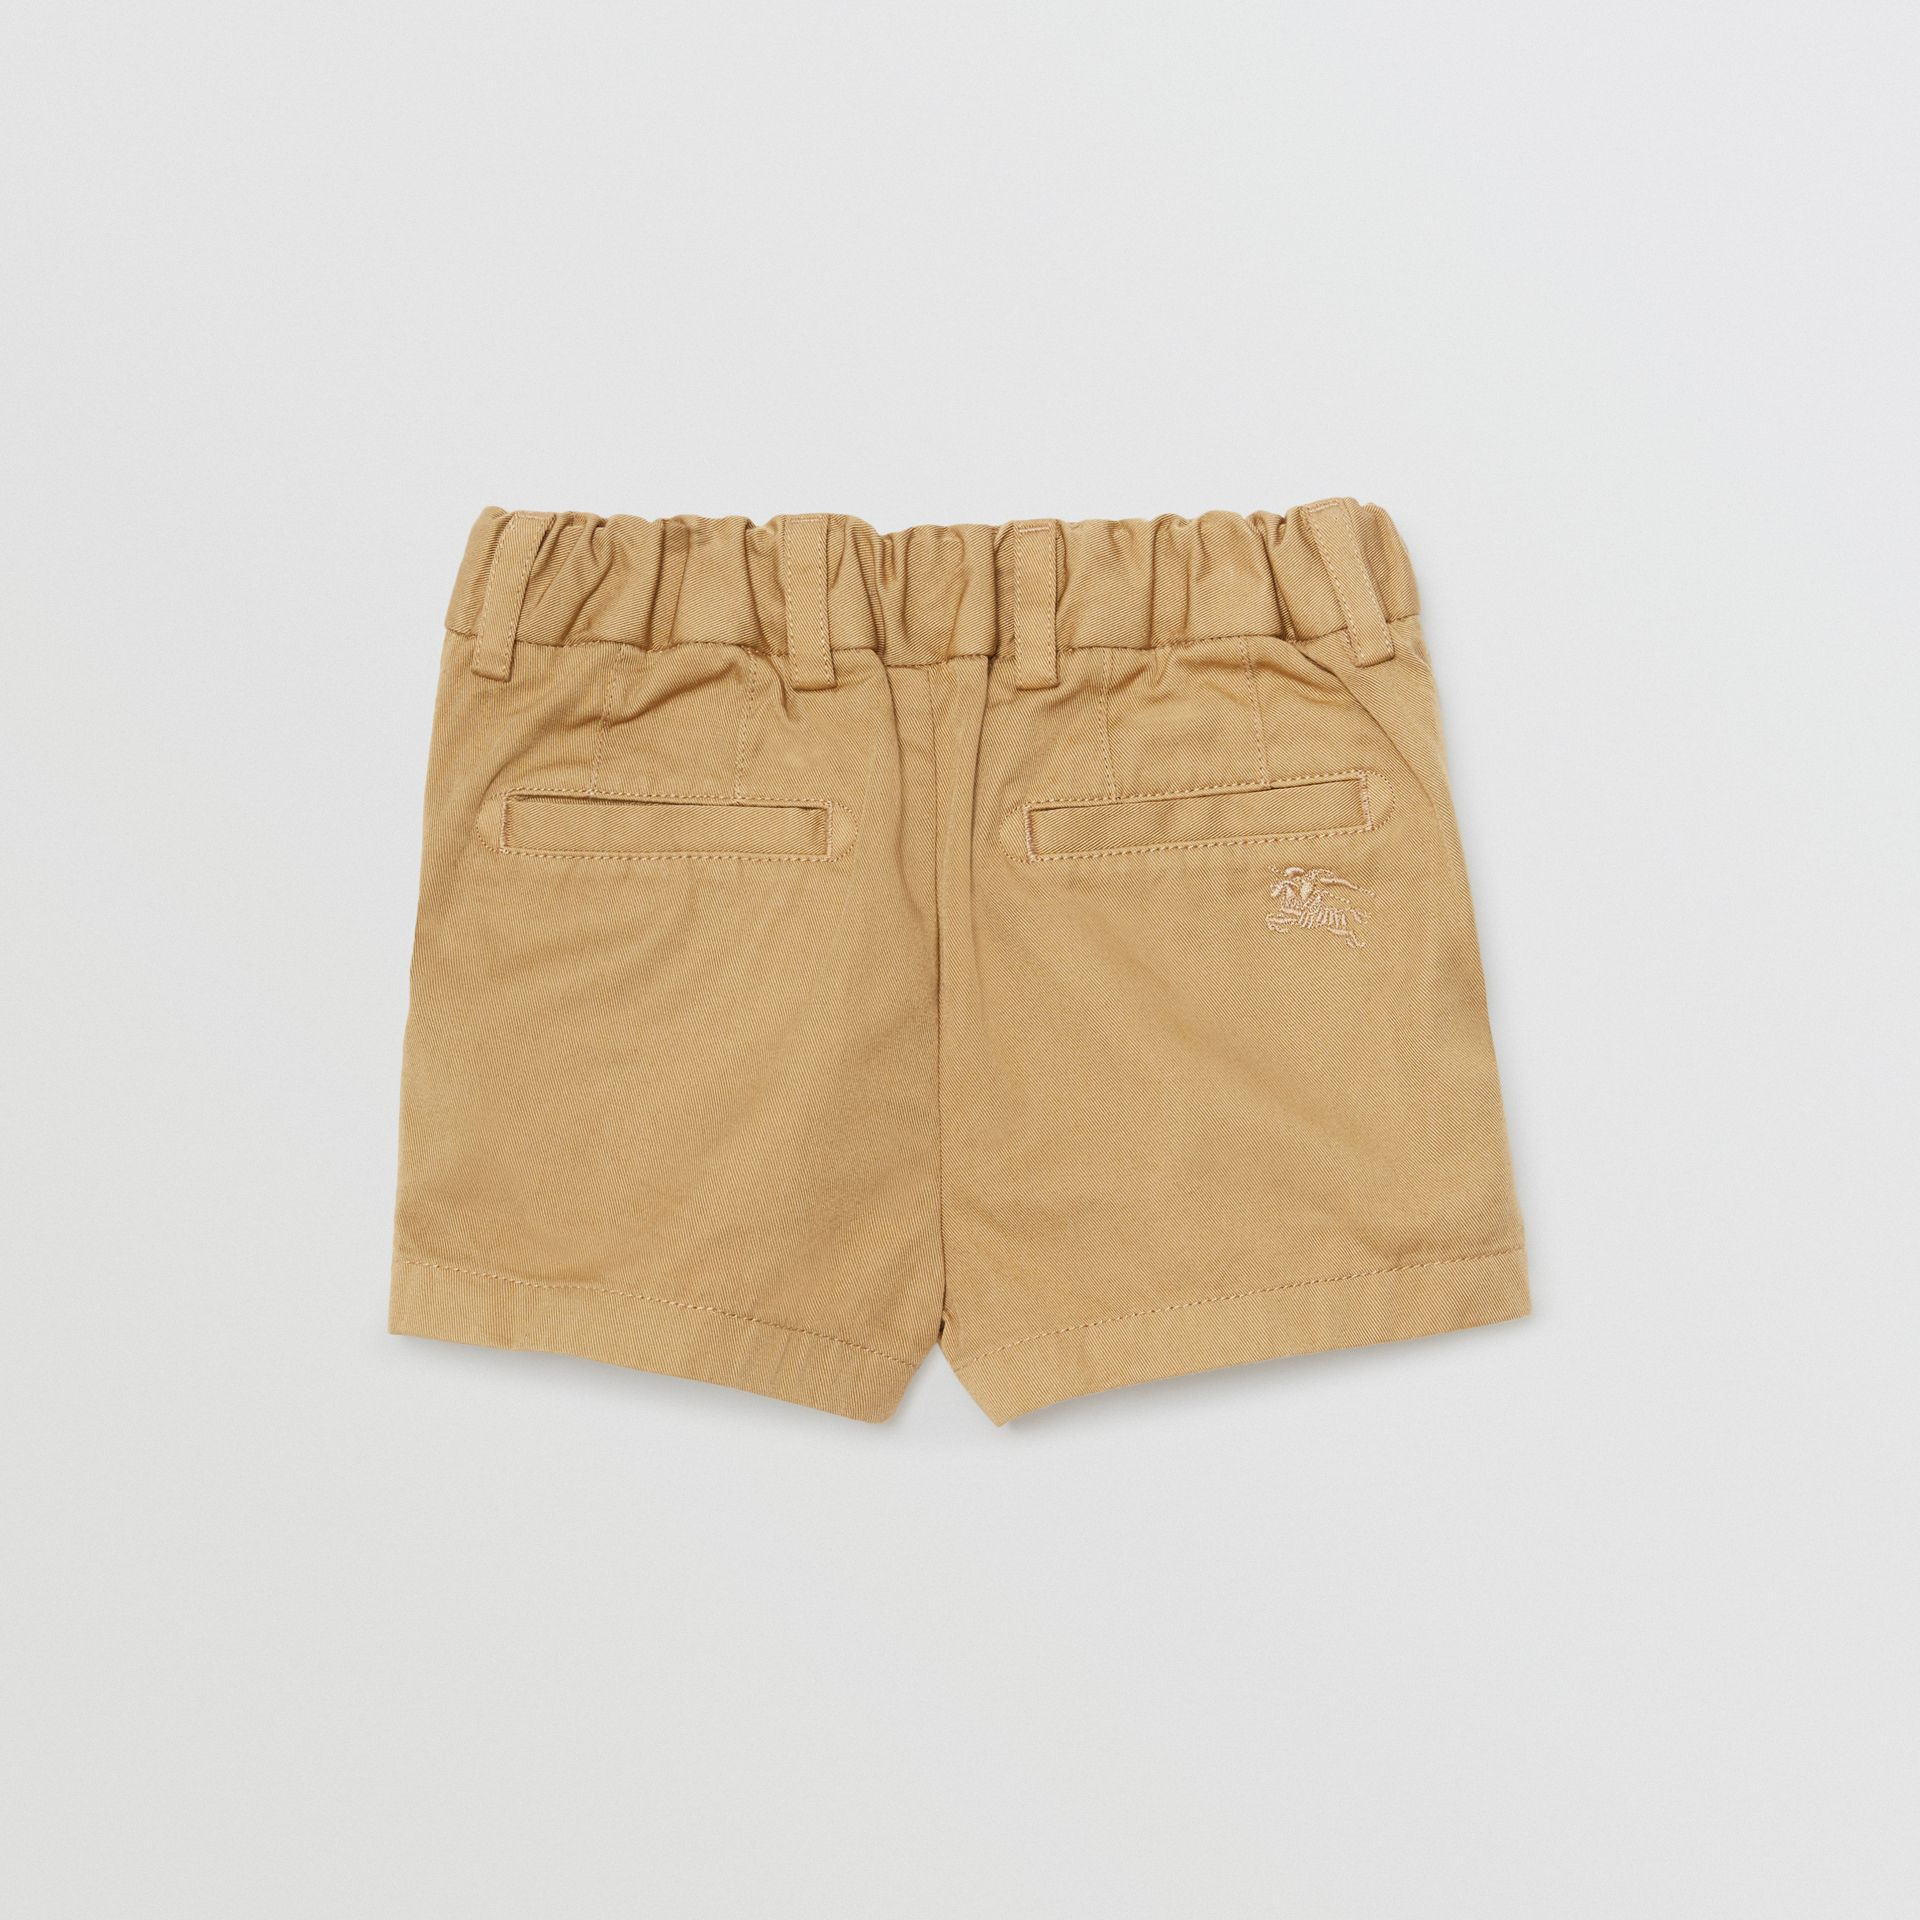 Cotton Chino Shorts in Taupe - Children | Burberry - gallery image 3